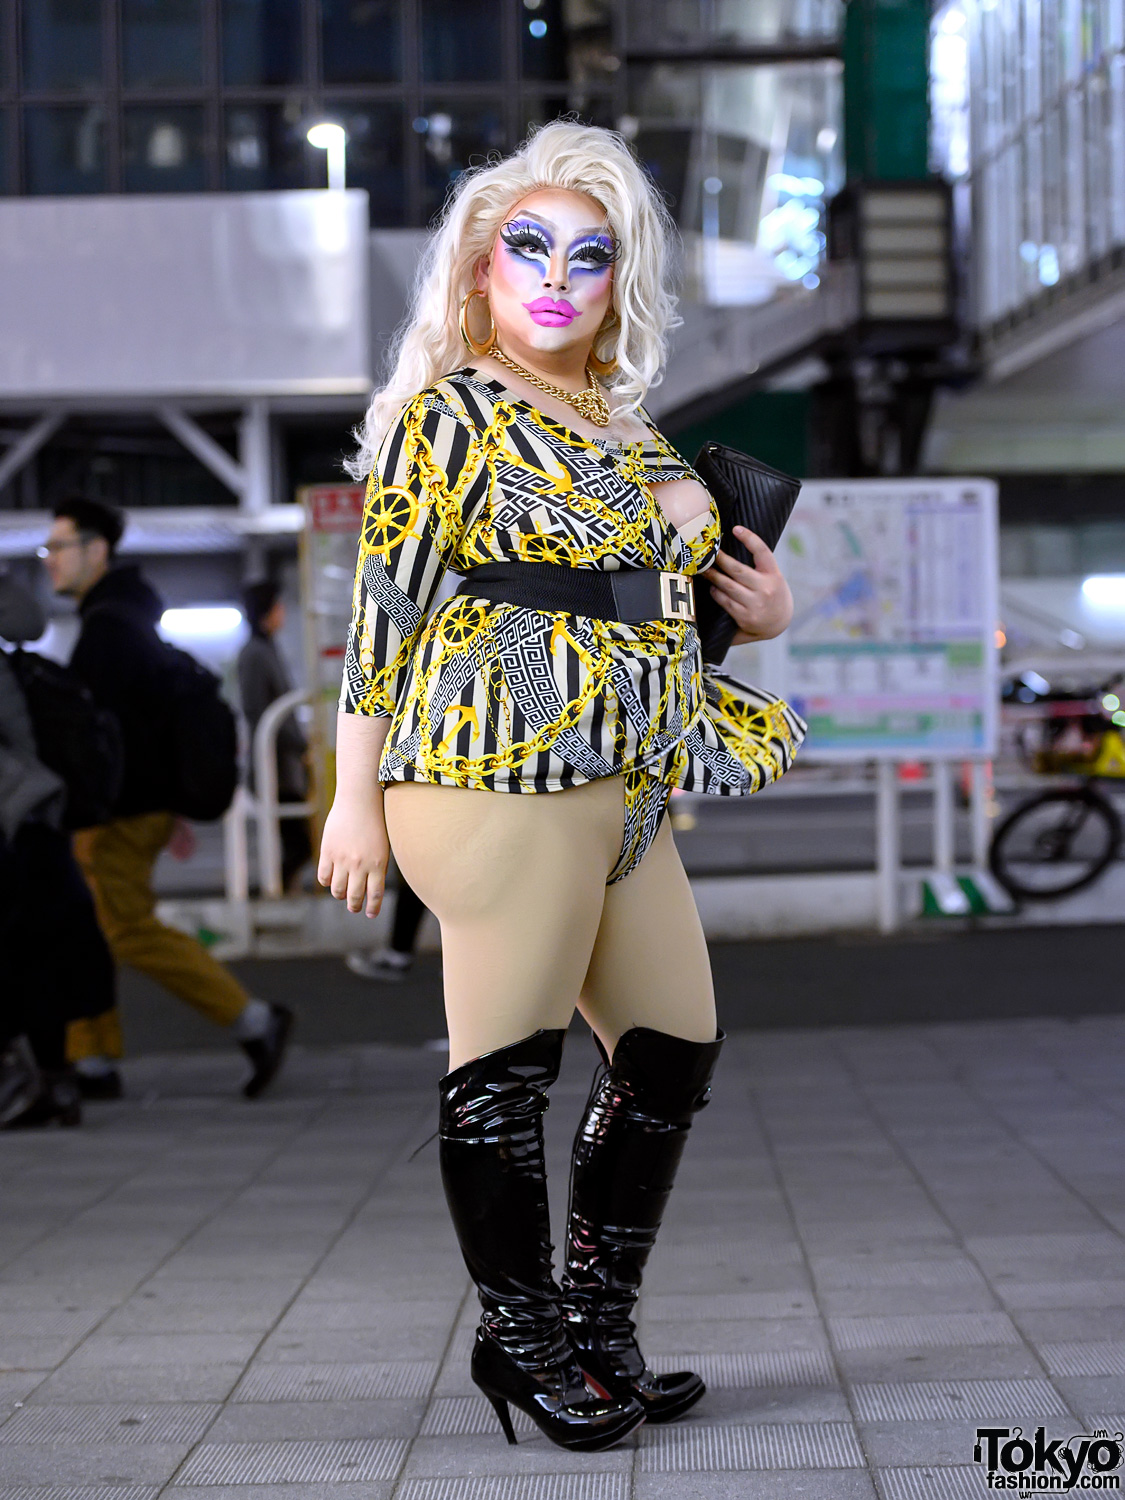 Tokyo Drag Queen on the Street in Shibuya